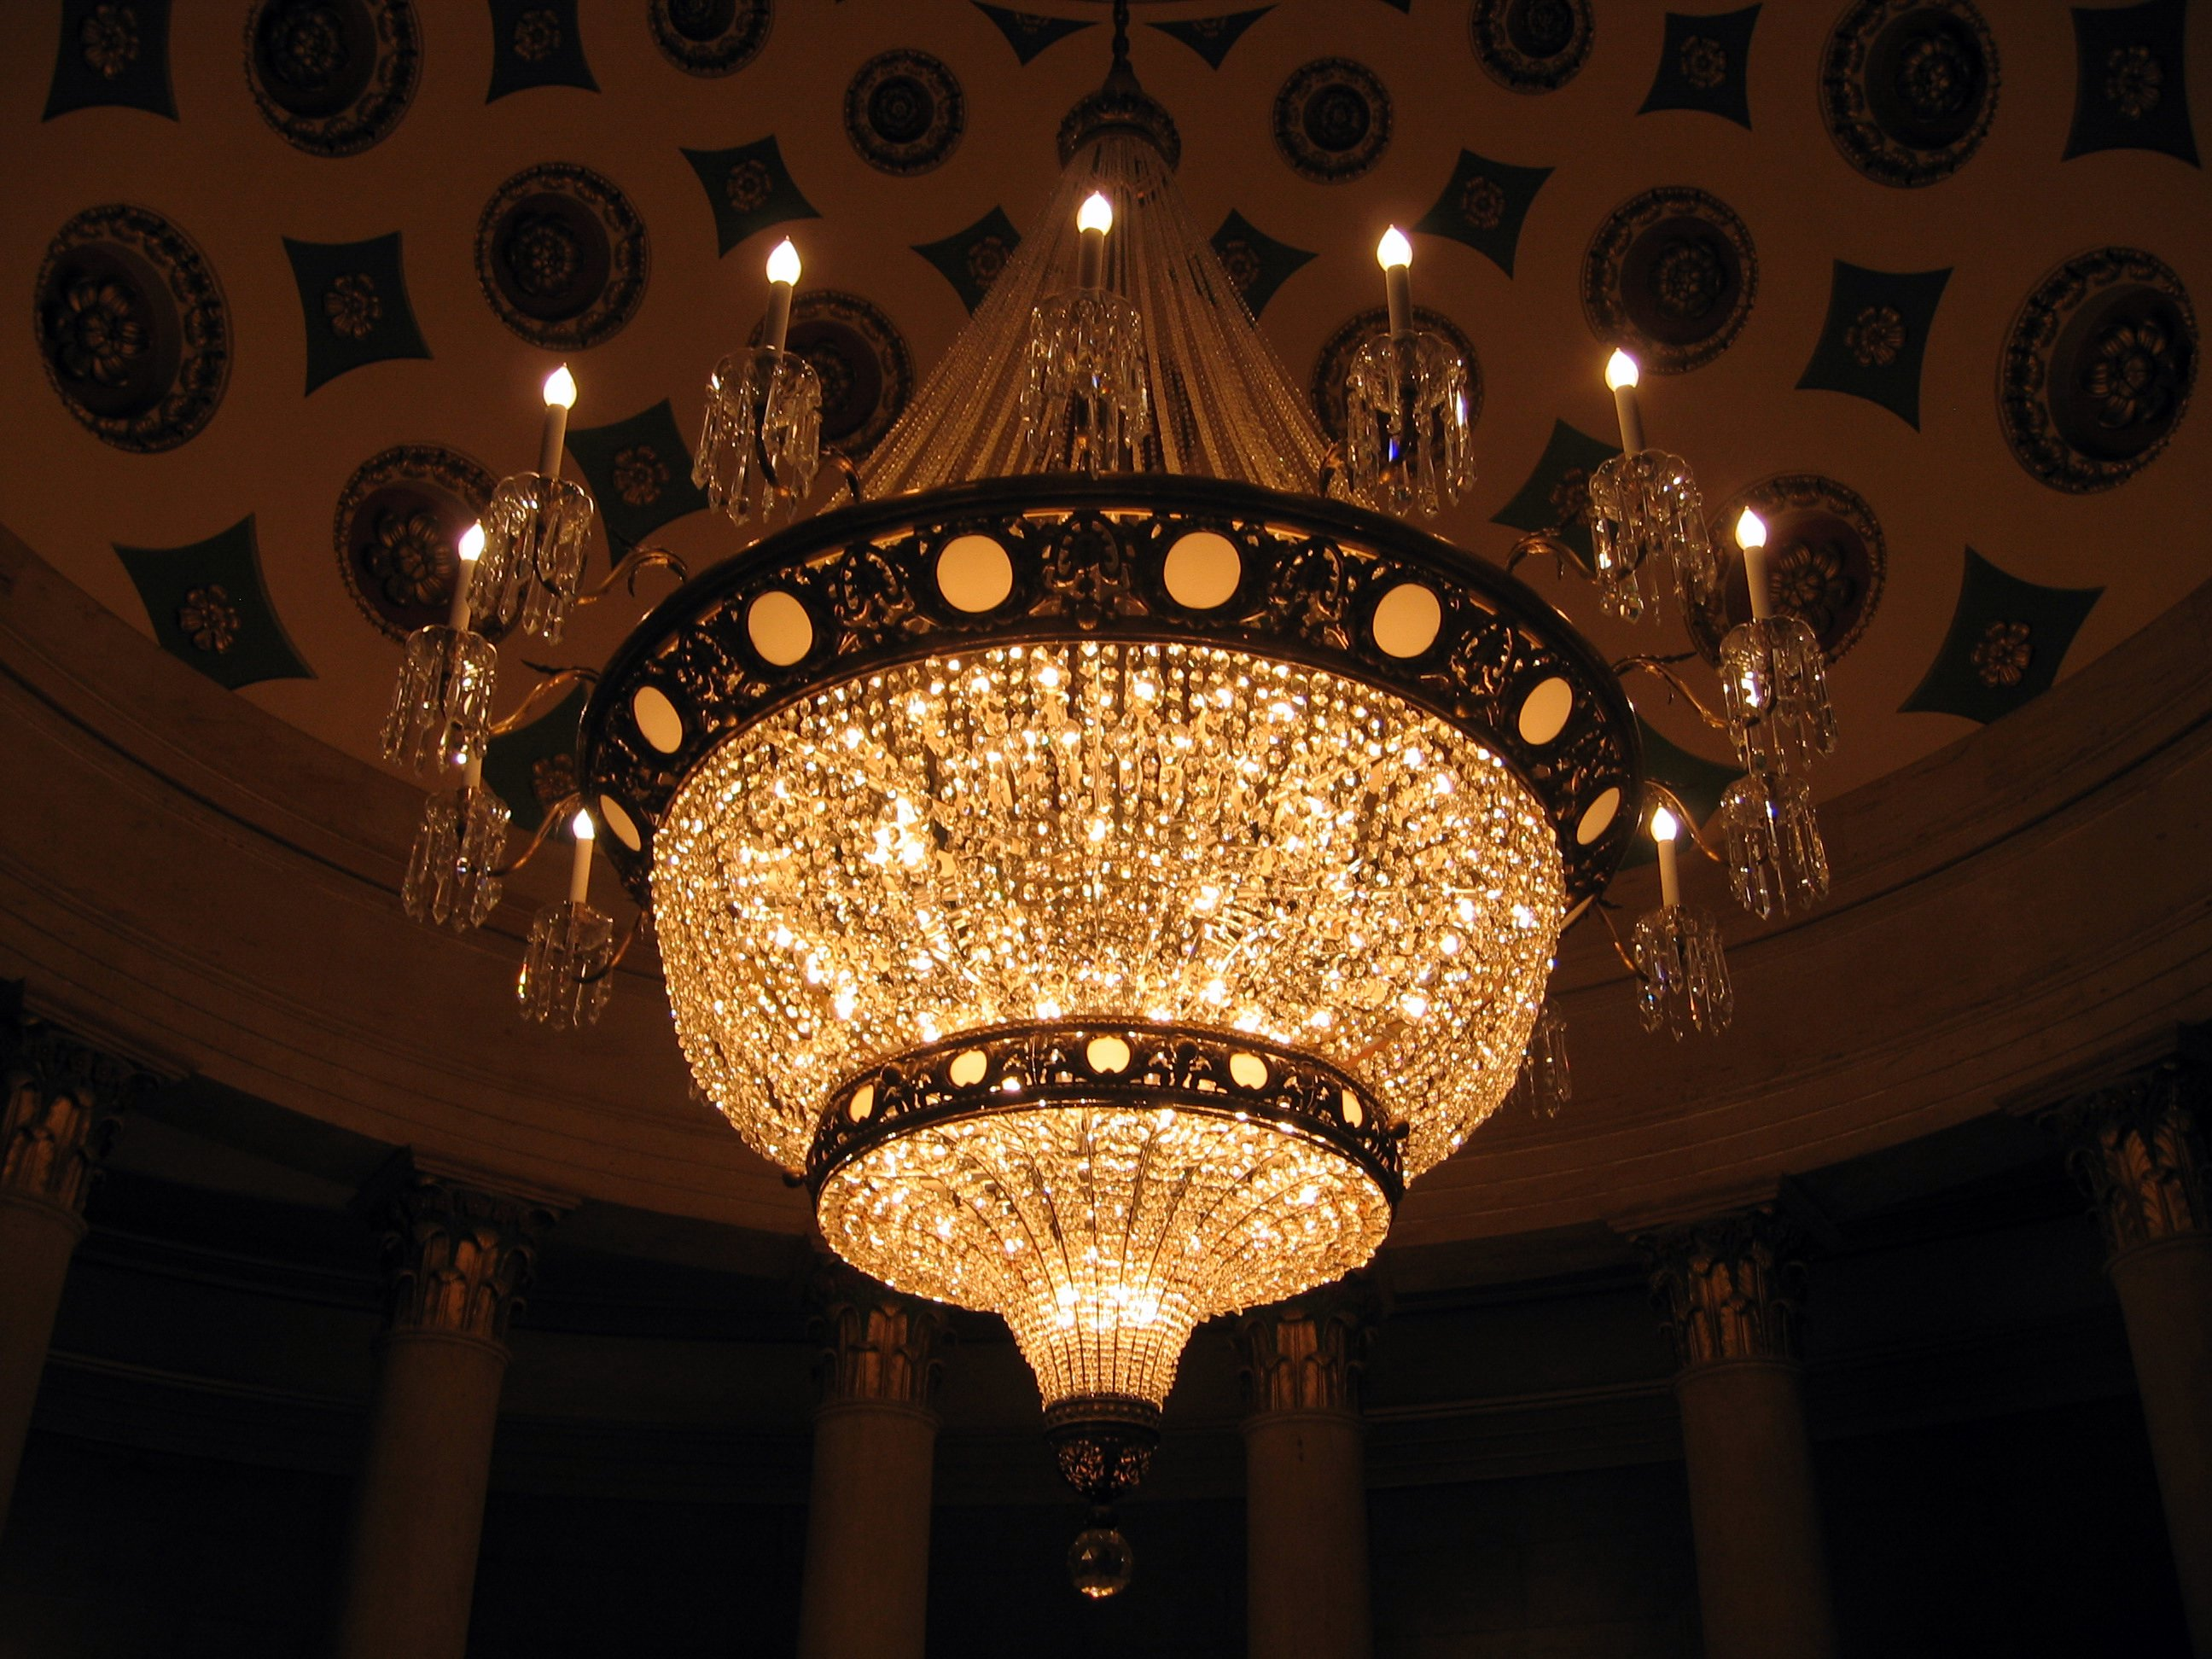 Top 10 Most Expensive Chandeliers In The World expensive chandeliers Top 10 Most Expensive Chandeliers In The World Chandelier in US Capitol Building